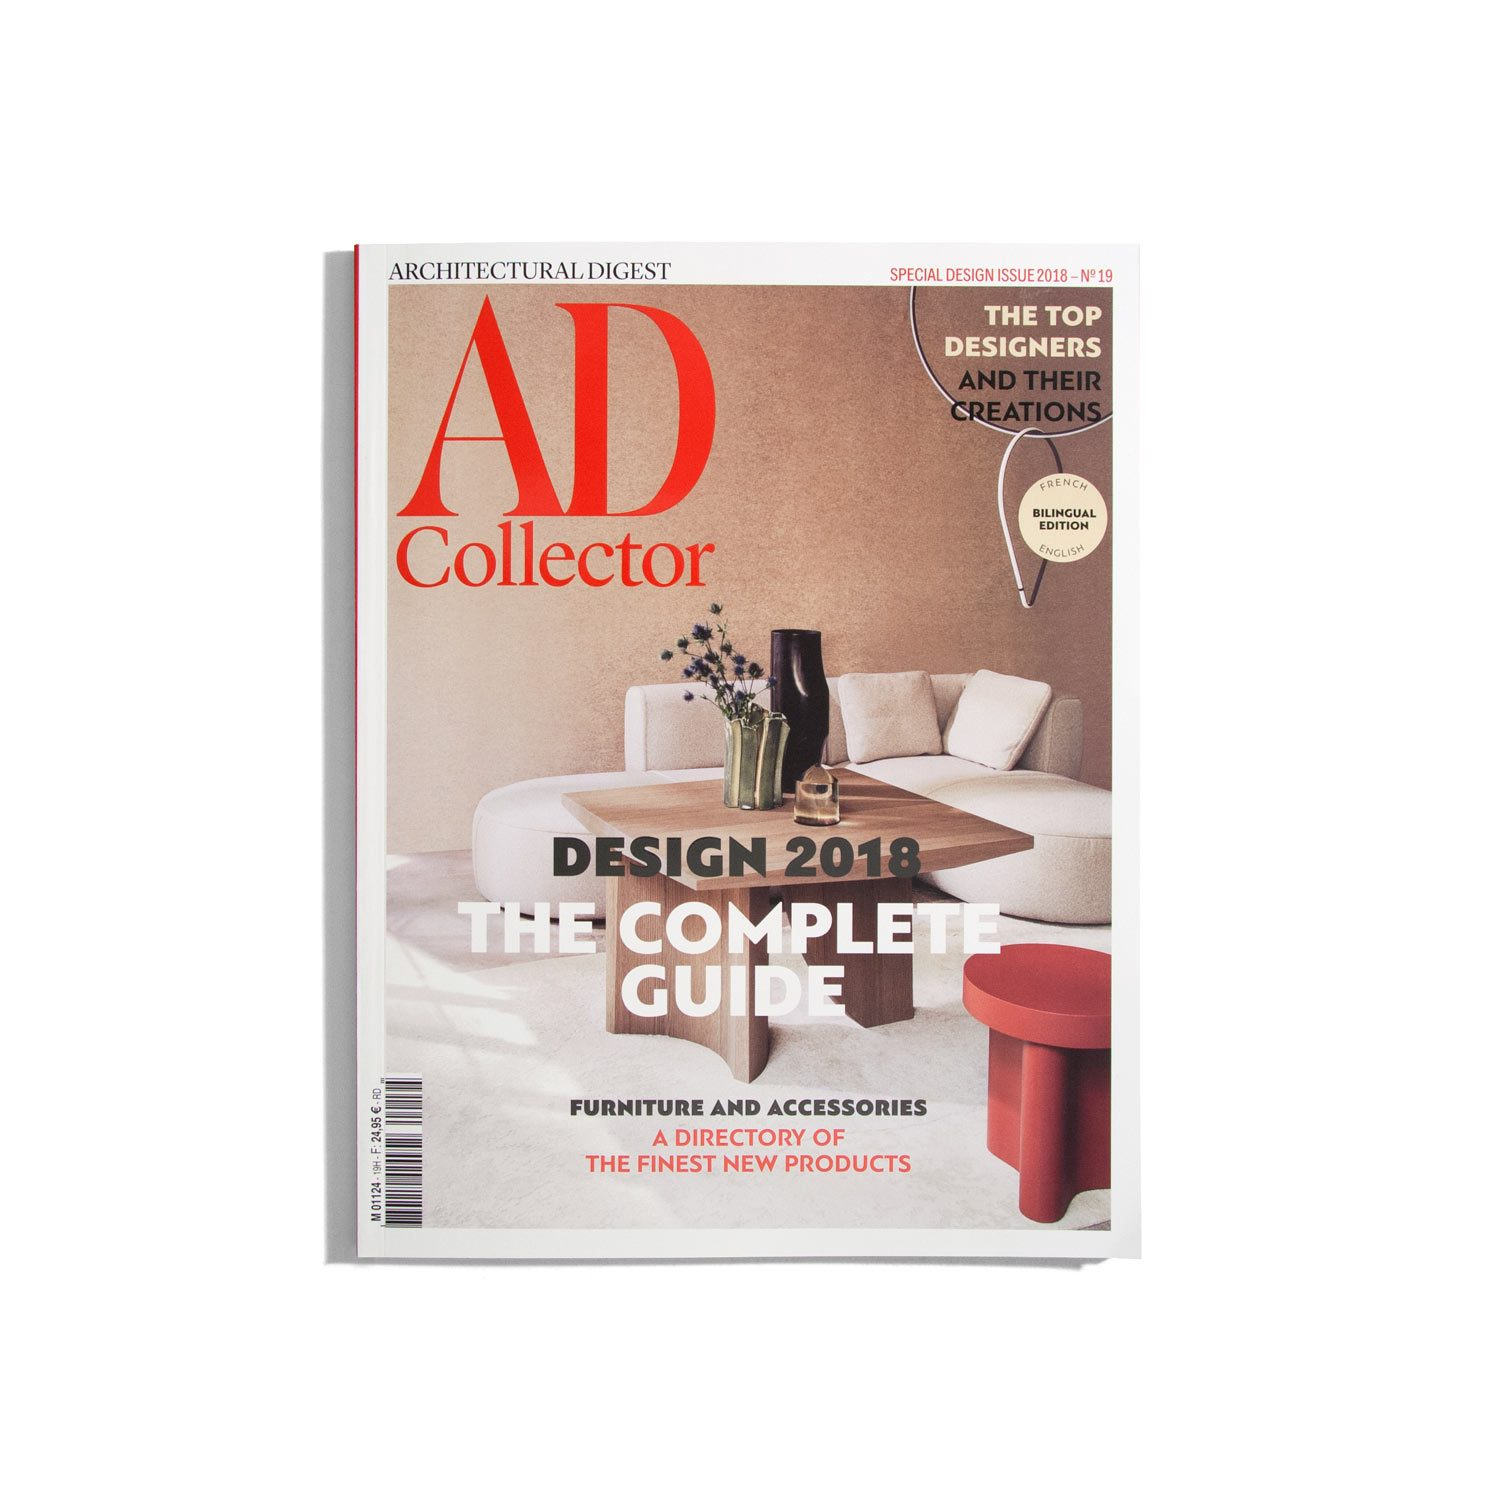 AD Architectural Digest Collector #19 2018